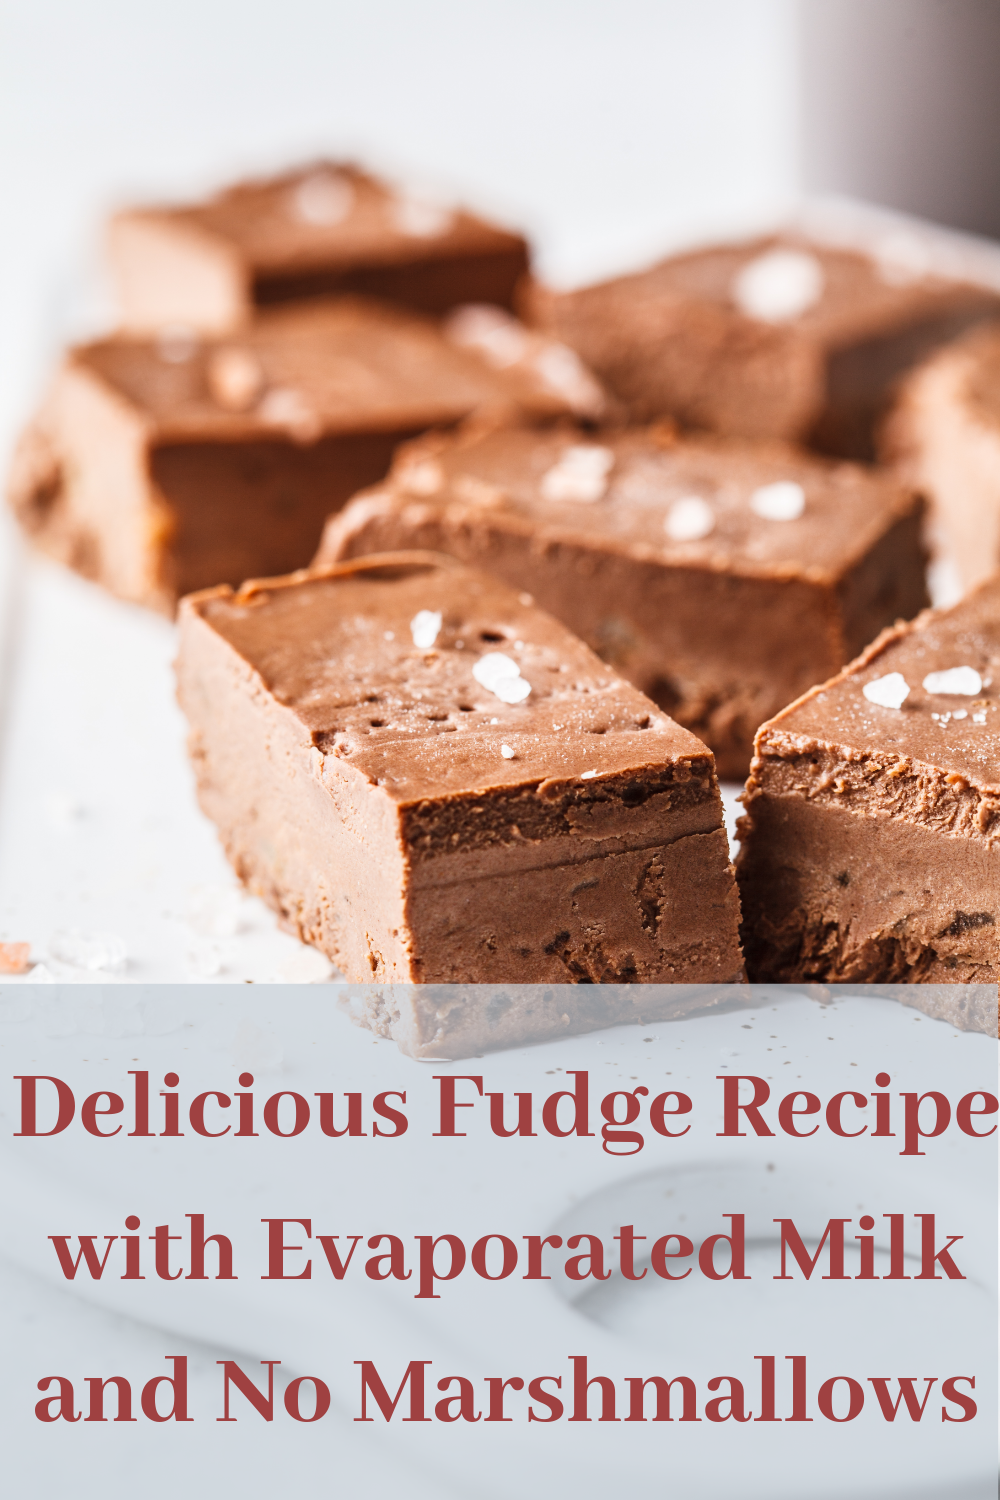 Delicious Fudge Recipe With Evaporated Milk And No Marshmallows Recipe In 2020 Guilt Free Dessert Recipes Fudge Recipes Desserts